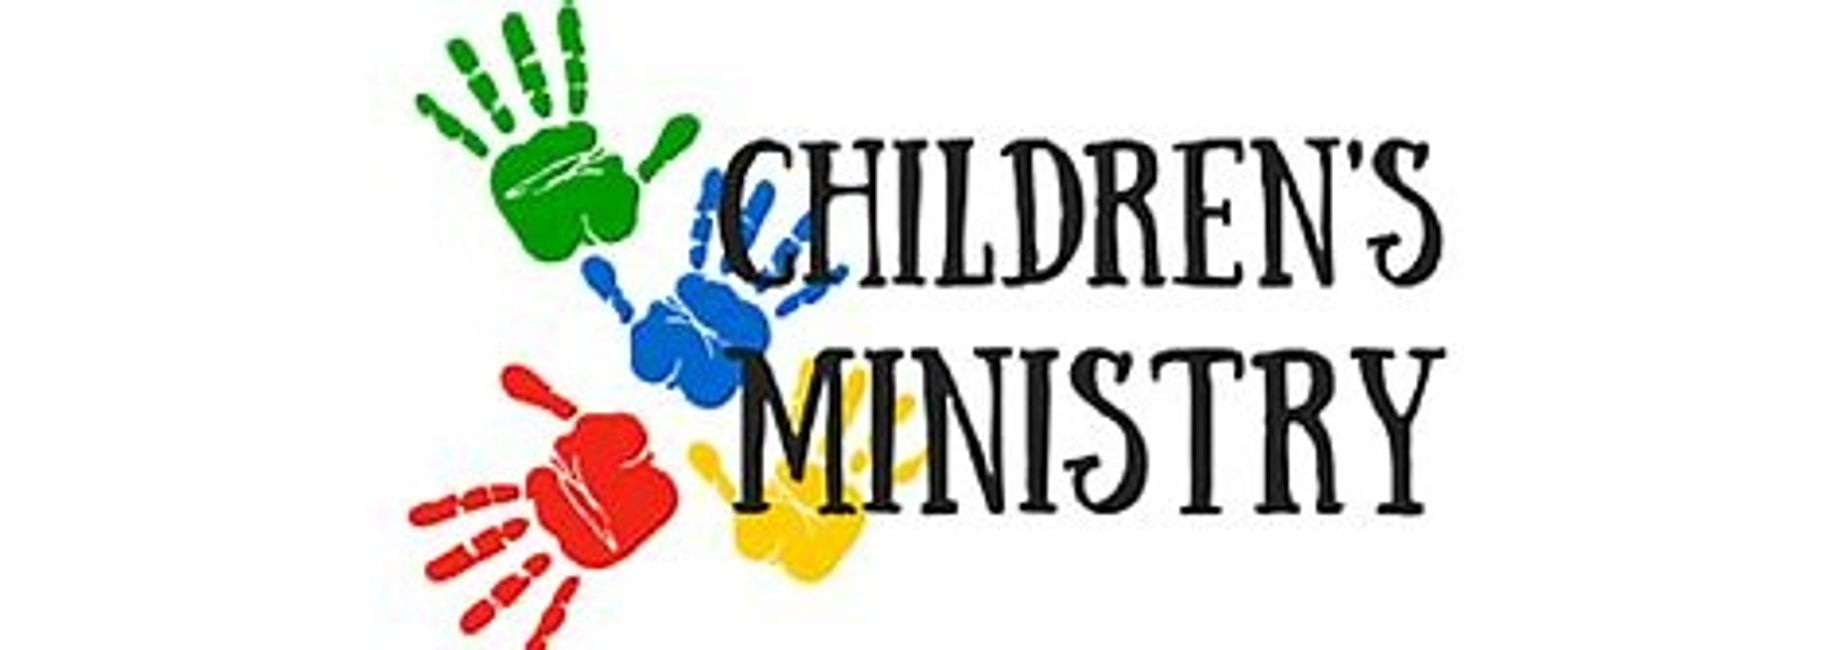 Children's Ministry at Compass Christian Fellowship Church in Parker, CO